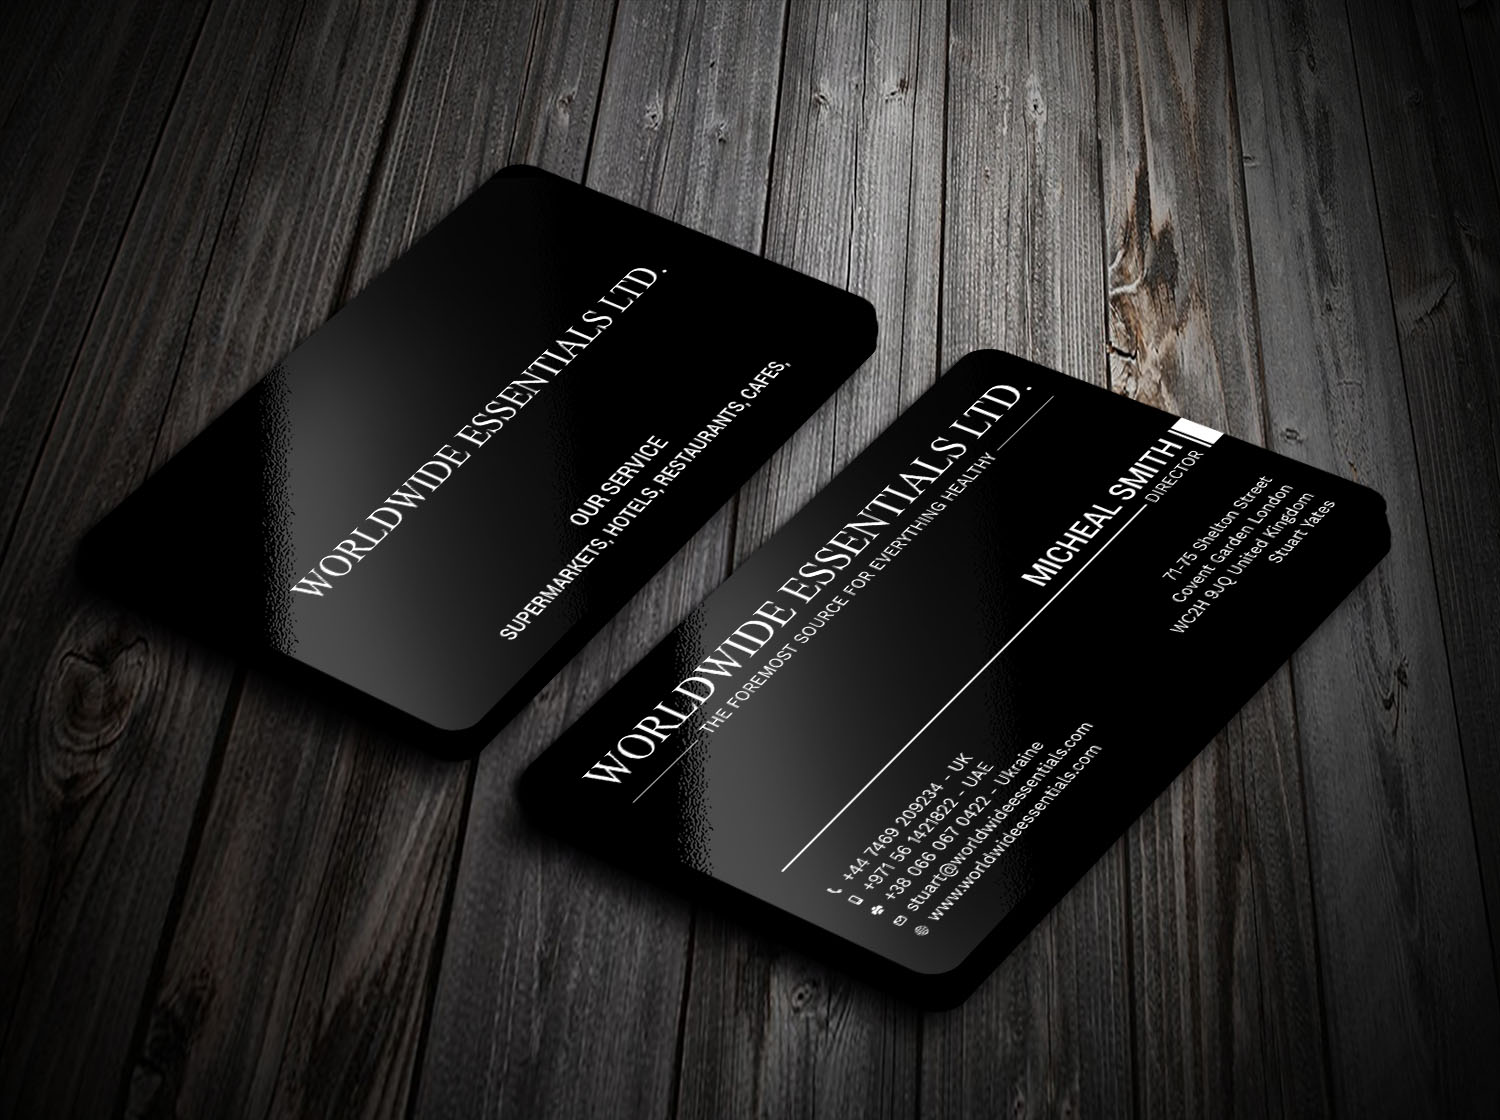 Serious professional food service business card design for a business card design by avanger000 for this project design 17710227 colourmoves